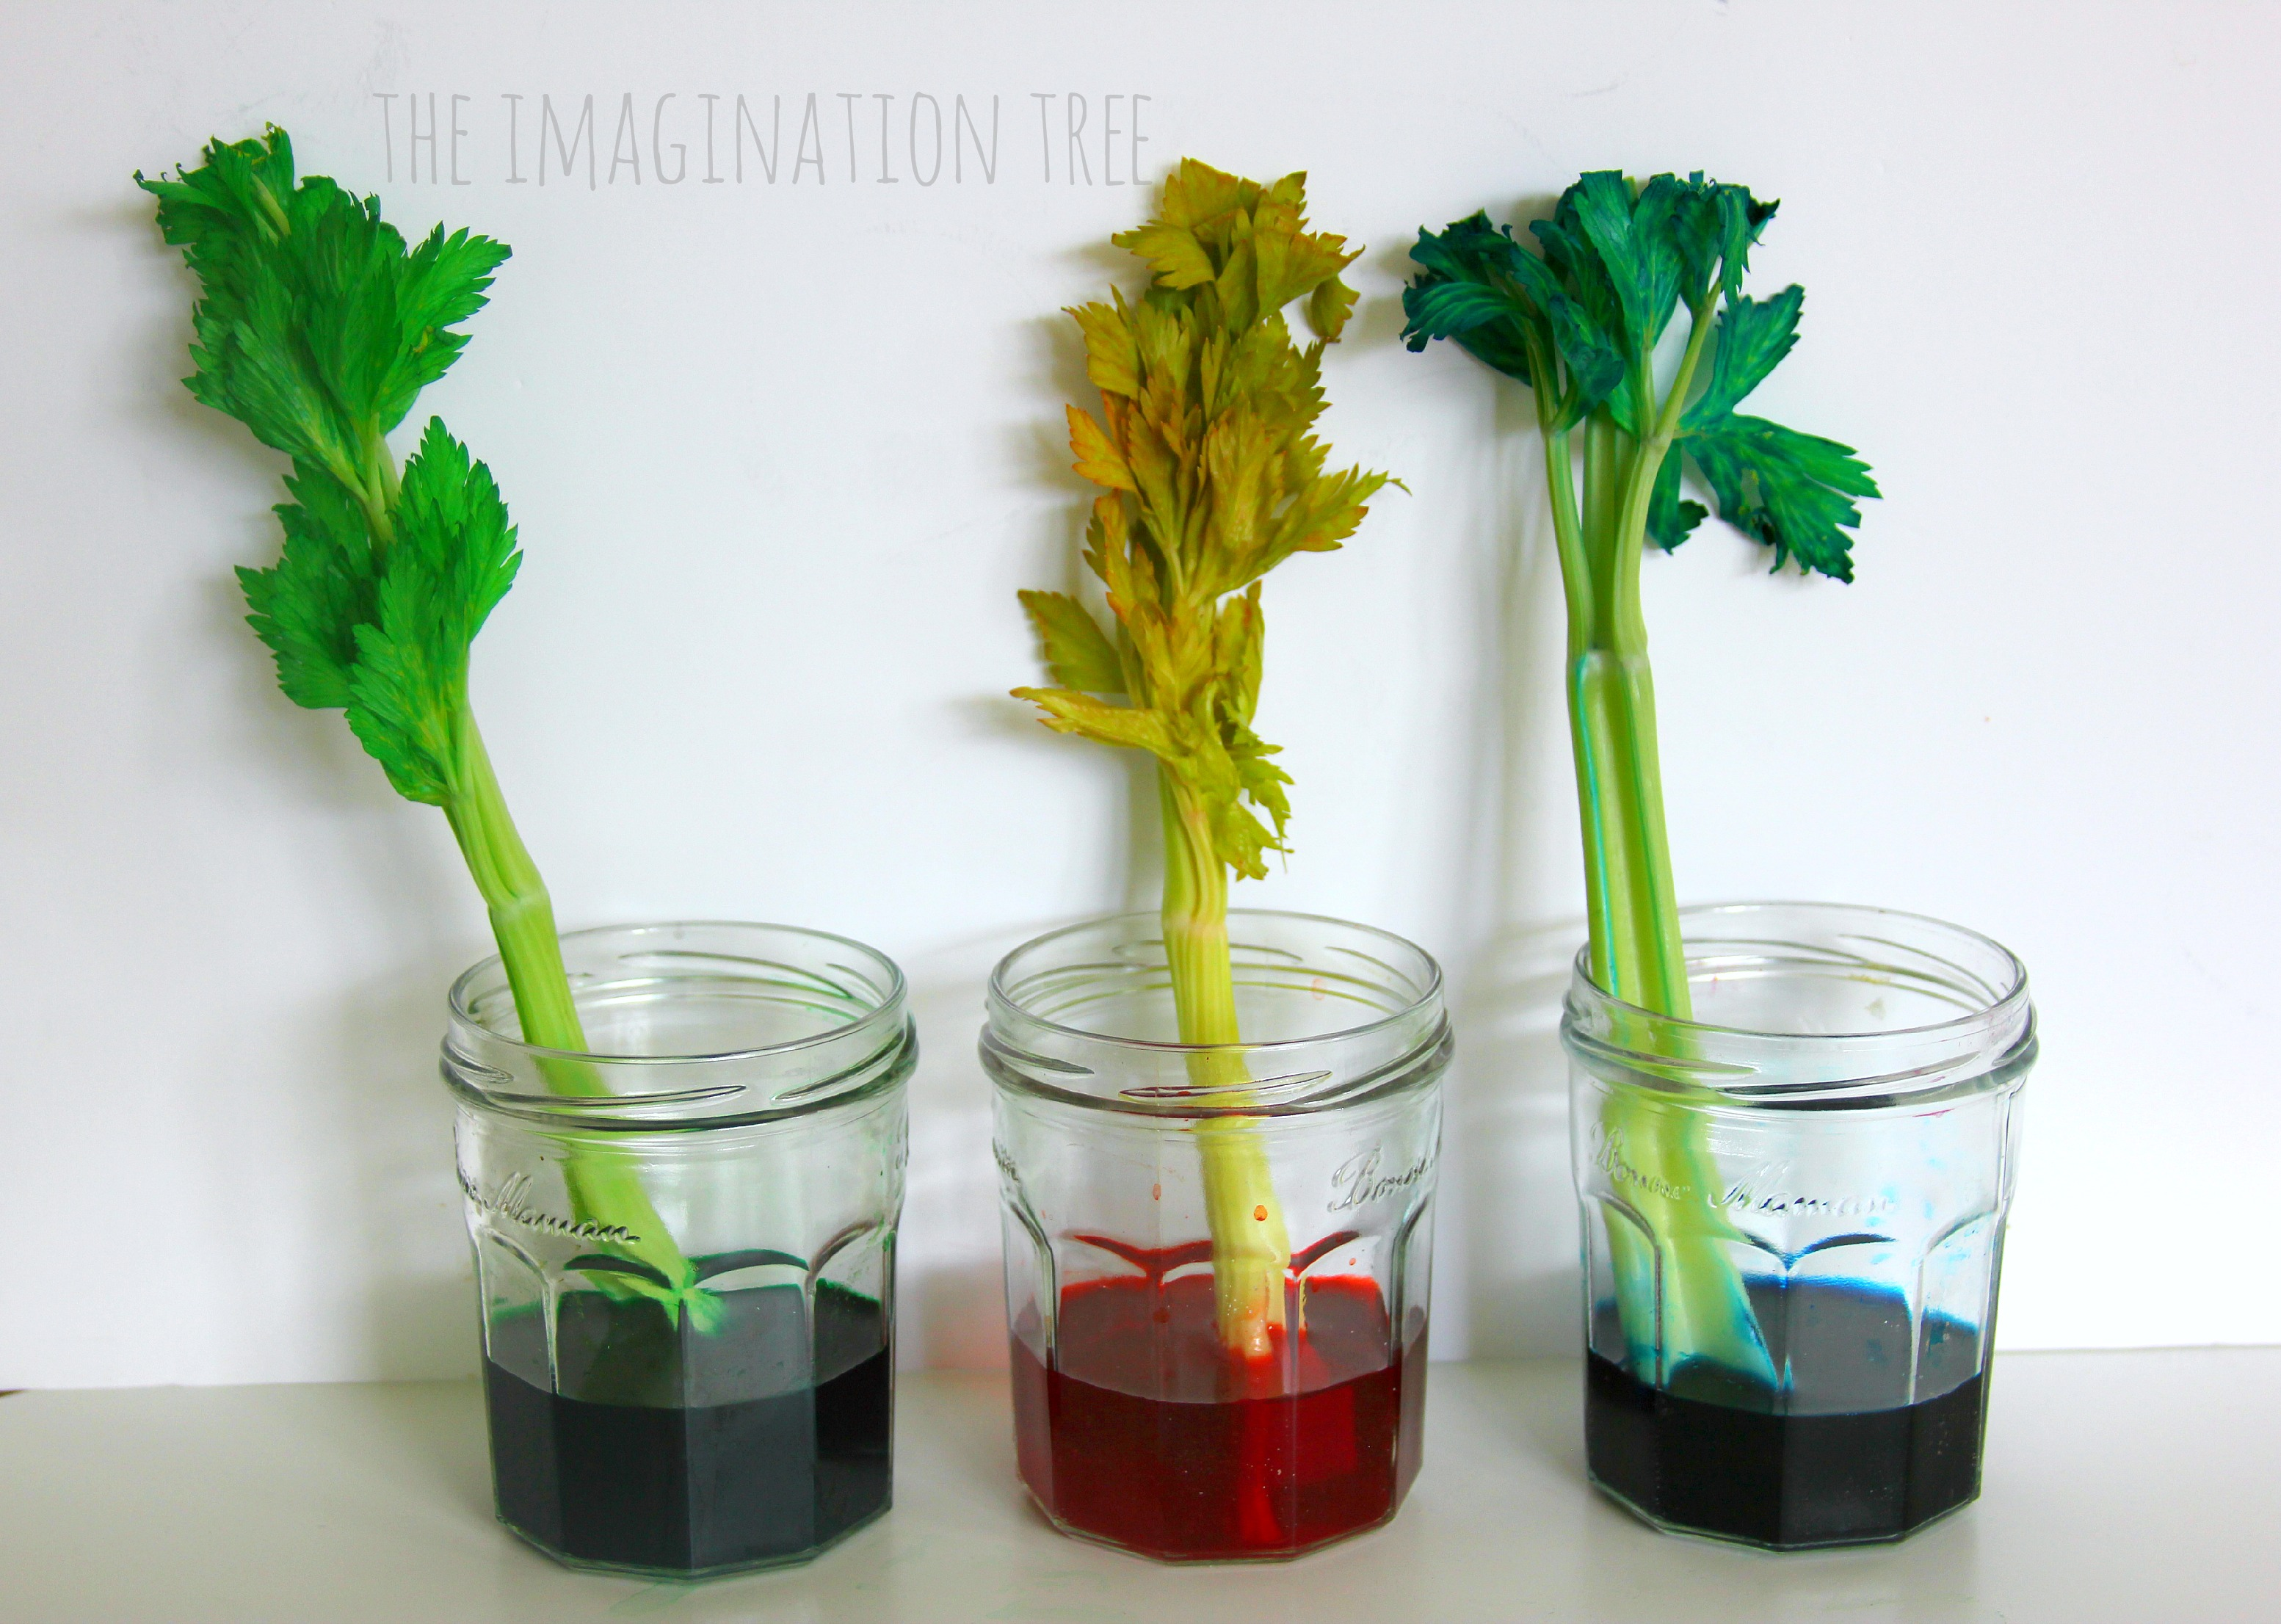 Dyed Celery Experiment: Transpiration Demonstration - The ...